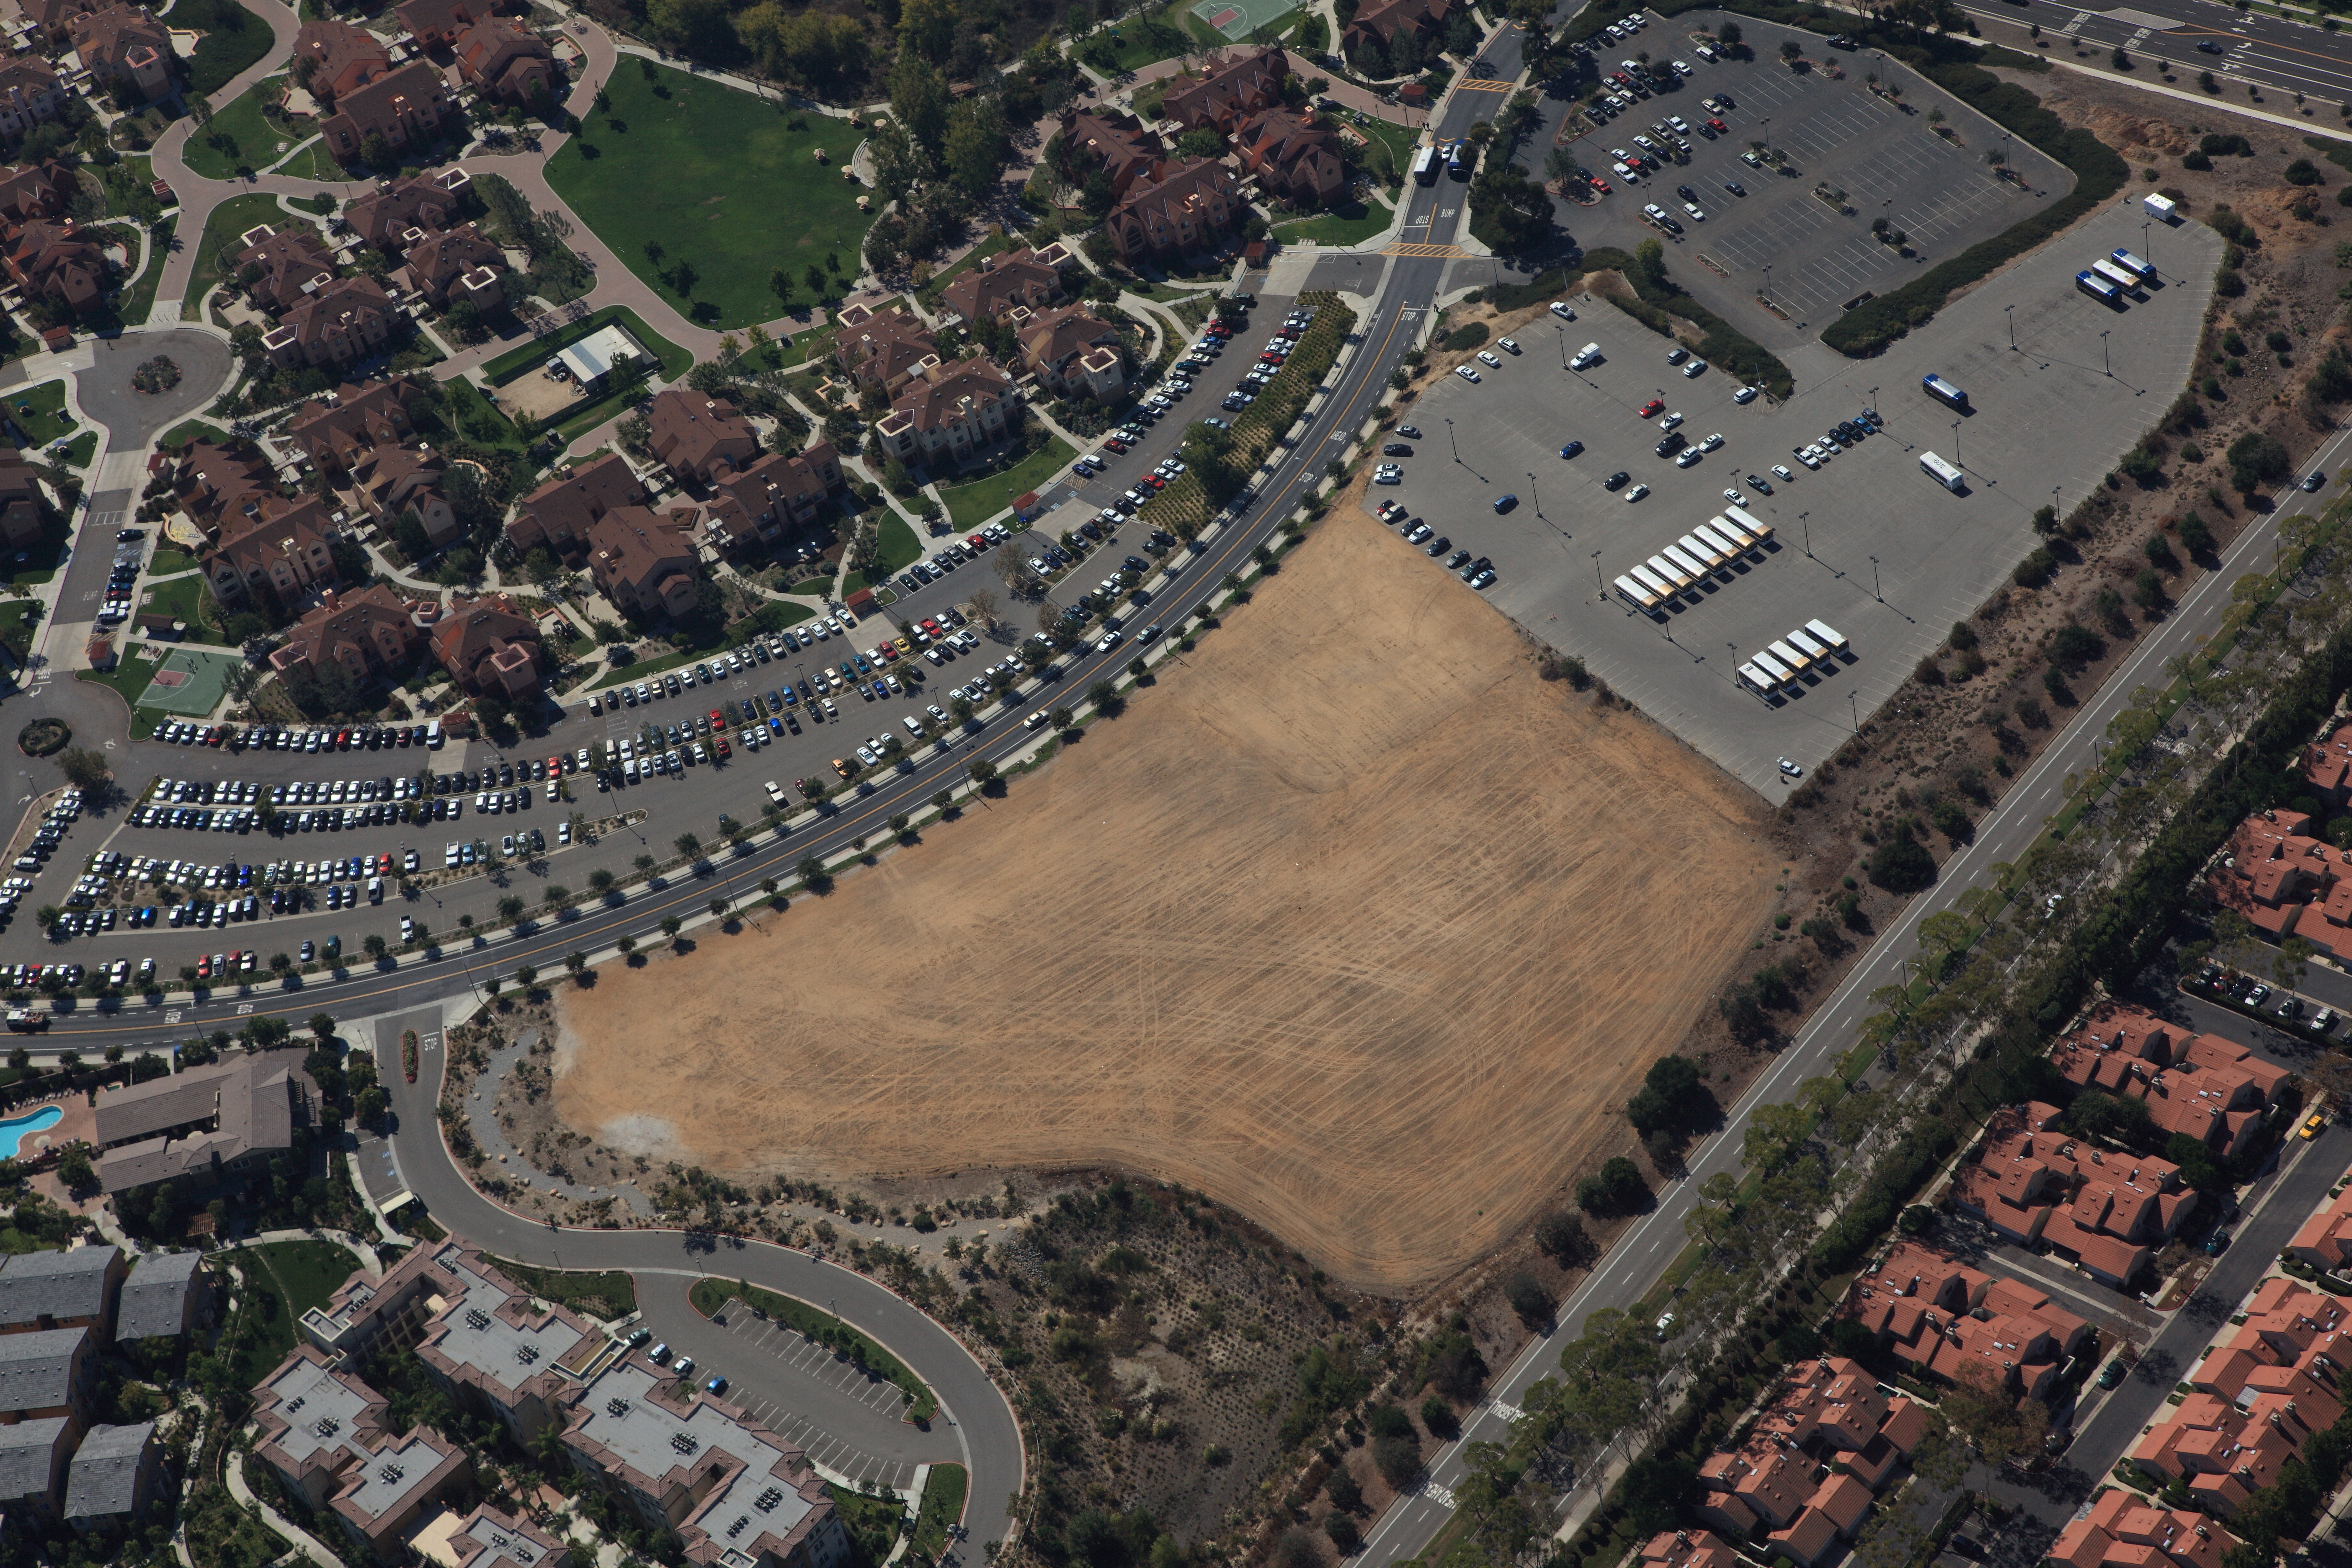 How to Utilize Vacant Property or Land